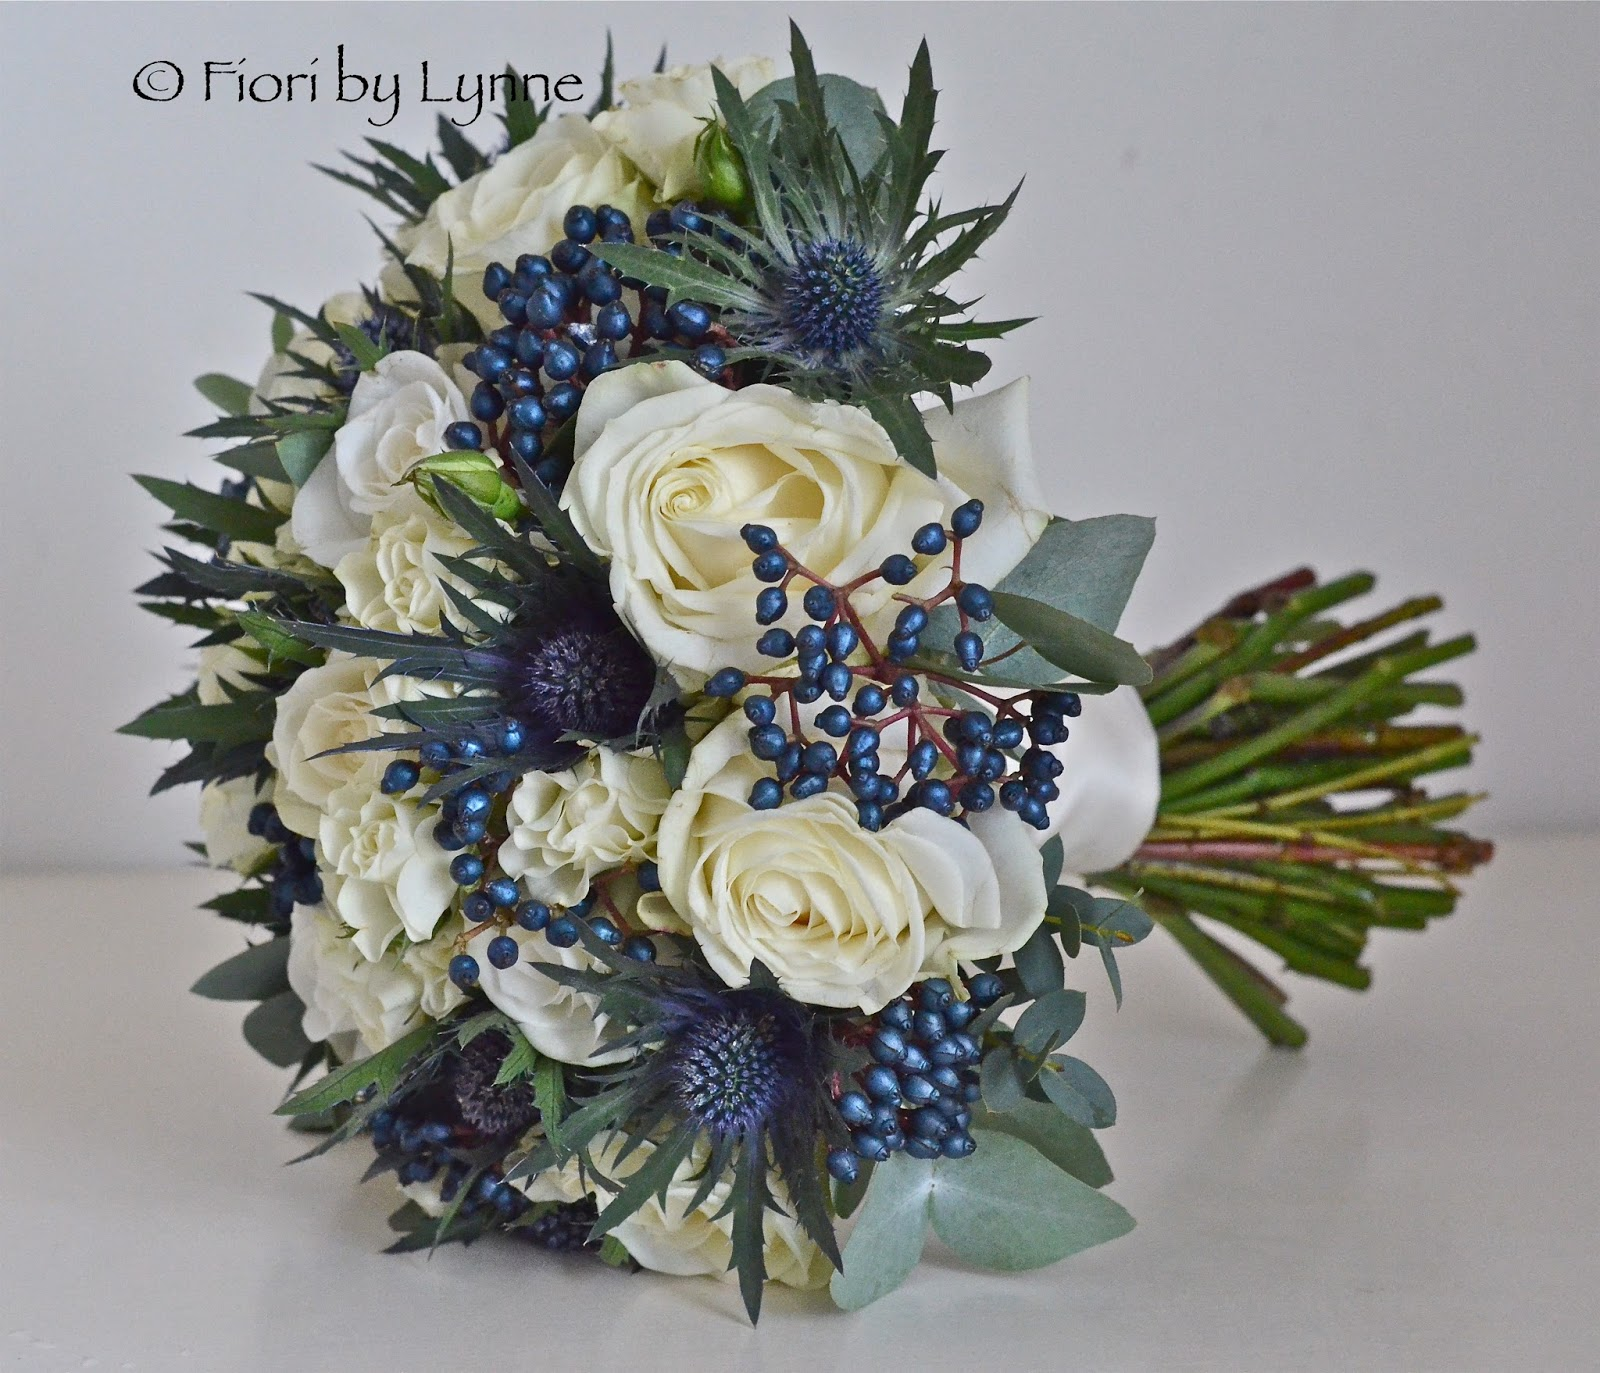 Wedding flowers blog ninas winter wedding flowers scottish ninas winter wedding flowers scottish thistle and rose izmirmasajfo